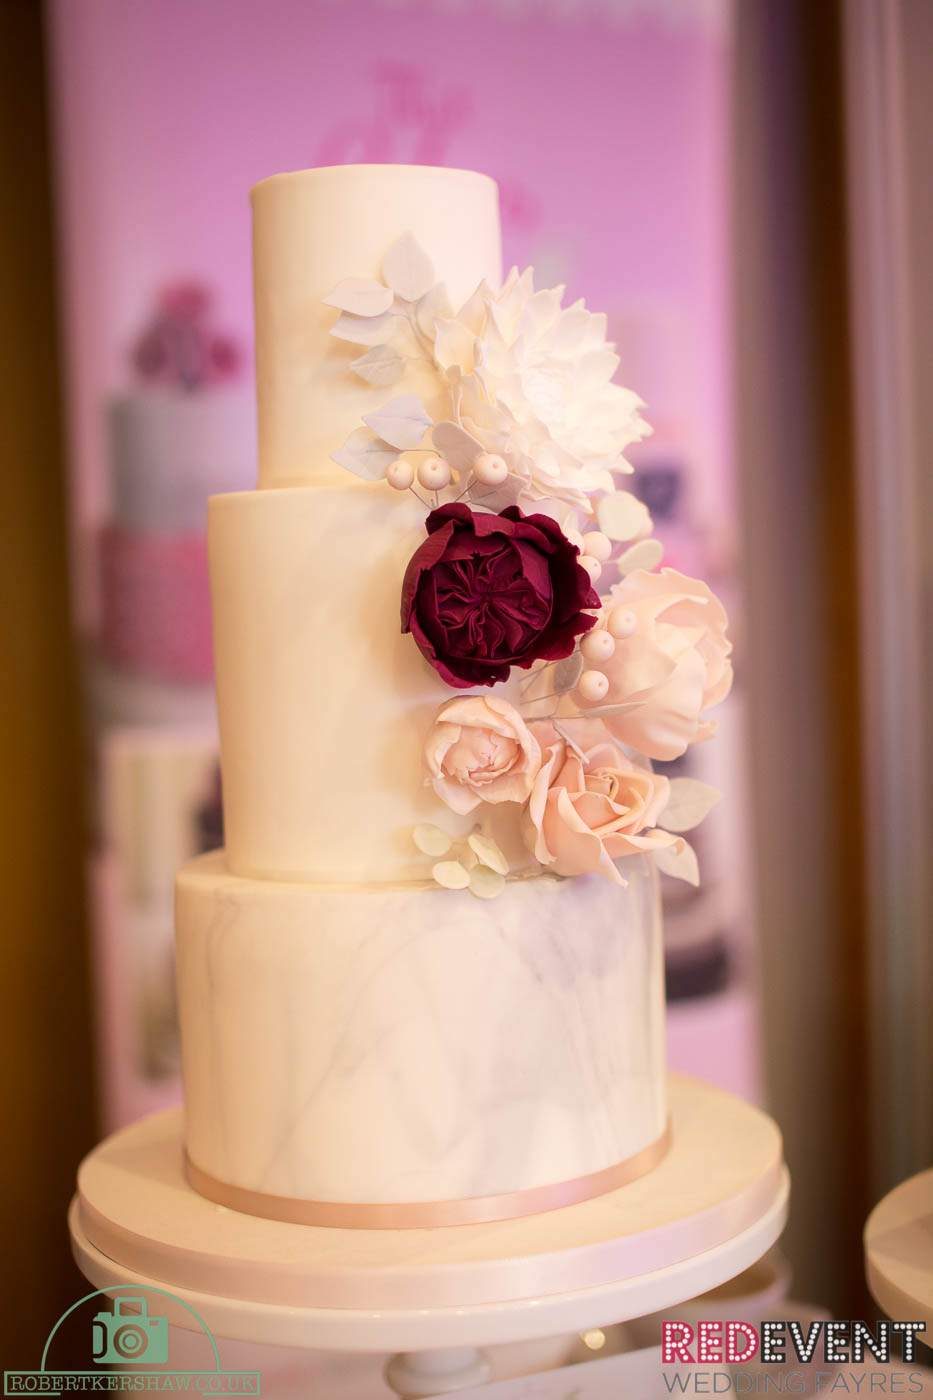 That Cakes the Biscuit special offer for Formby Hall Wedding Fayre Liverpool Wedding Fair Merseyside Weddings www.redeventweddingfayres.com3.jpg